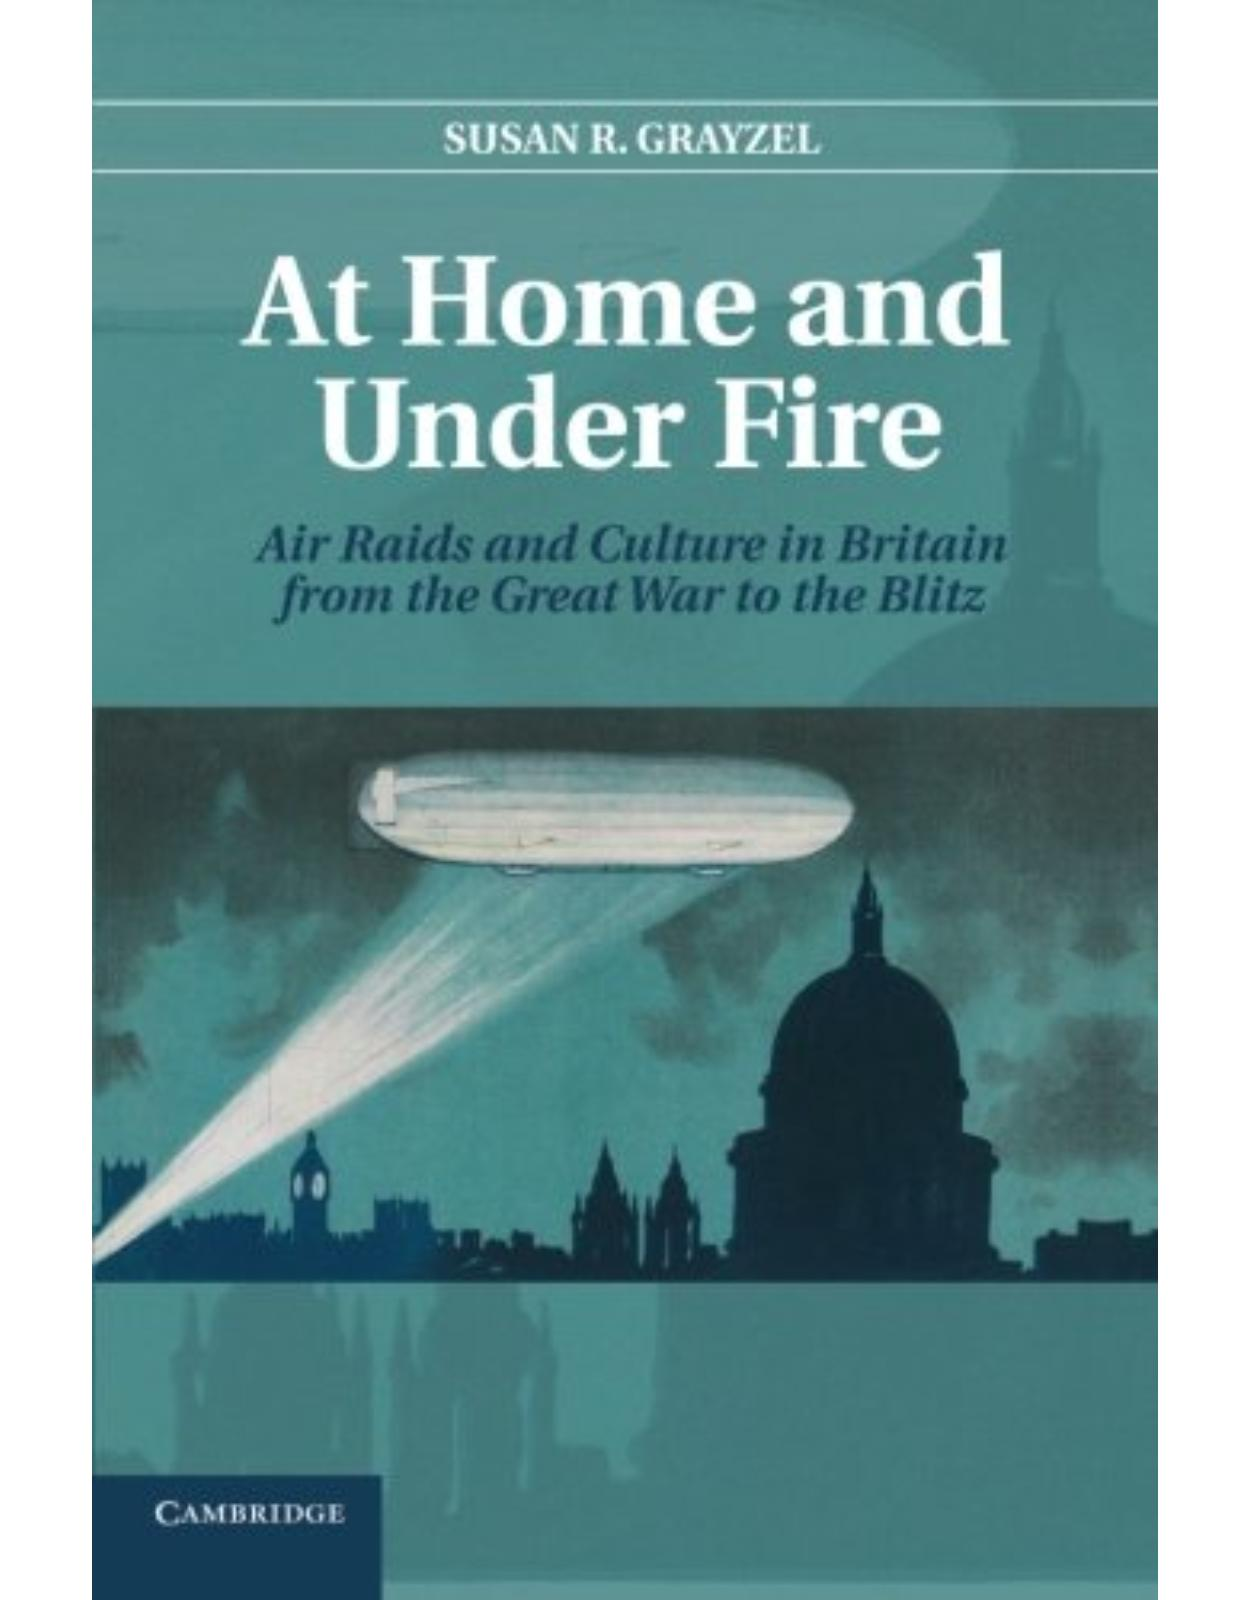 At Home and under Fire: Air Raids and Culture in Britain from the Great War to the Blitz